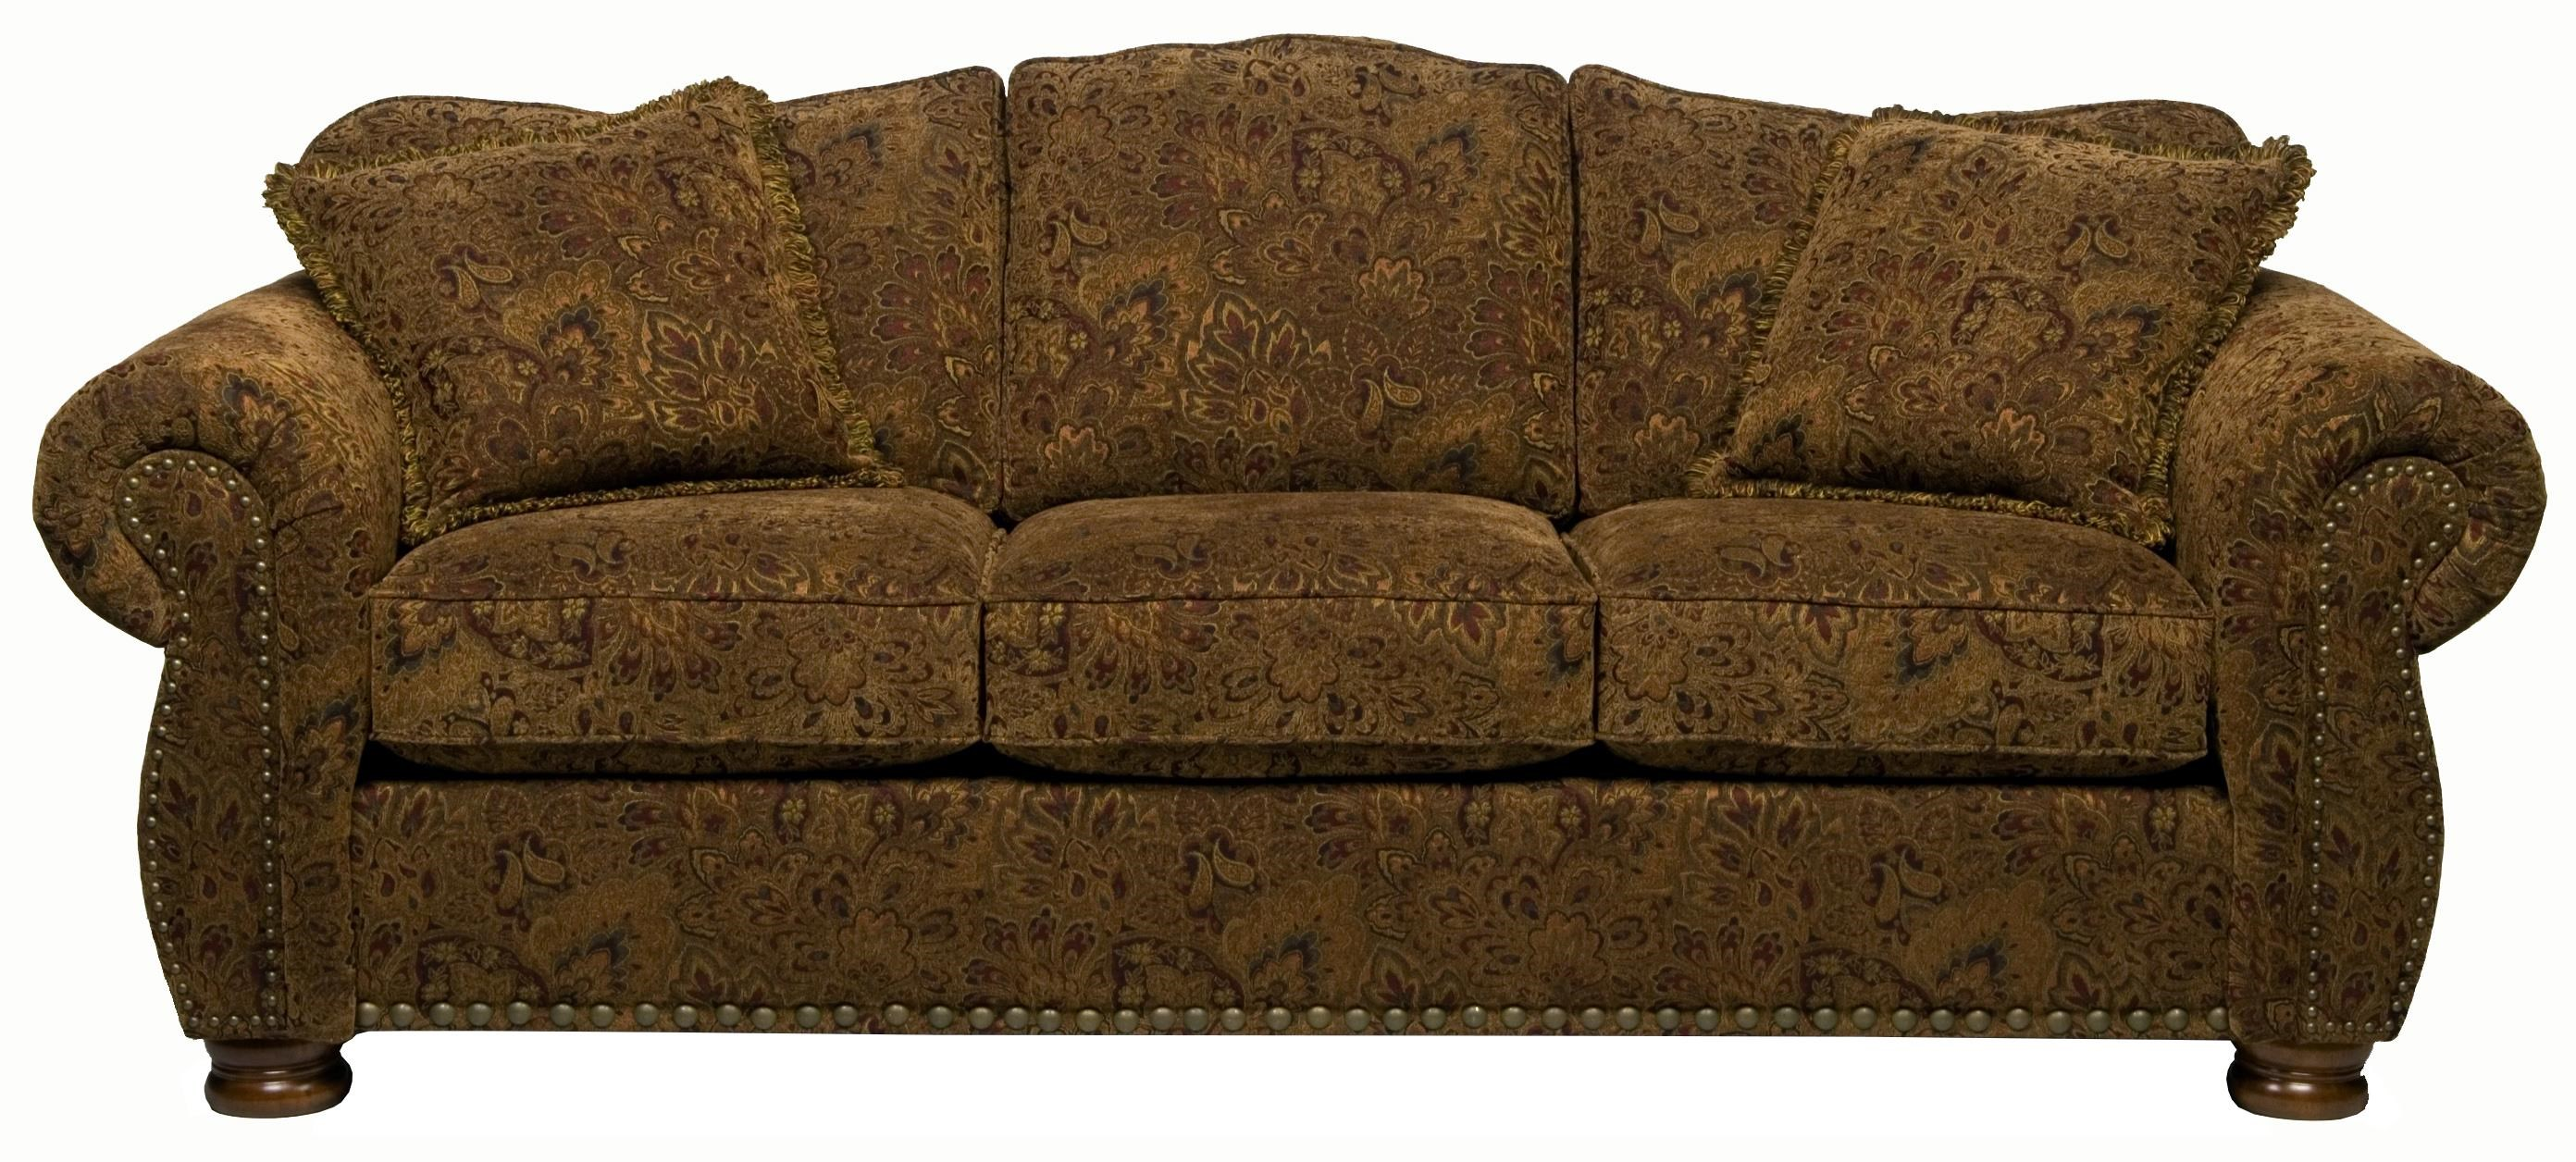 Stanton 326 Traditional Camel Back Queen Gel Sofa Sleeper With Rolled Arms  And Bun Feet